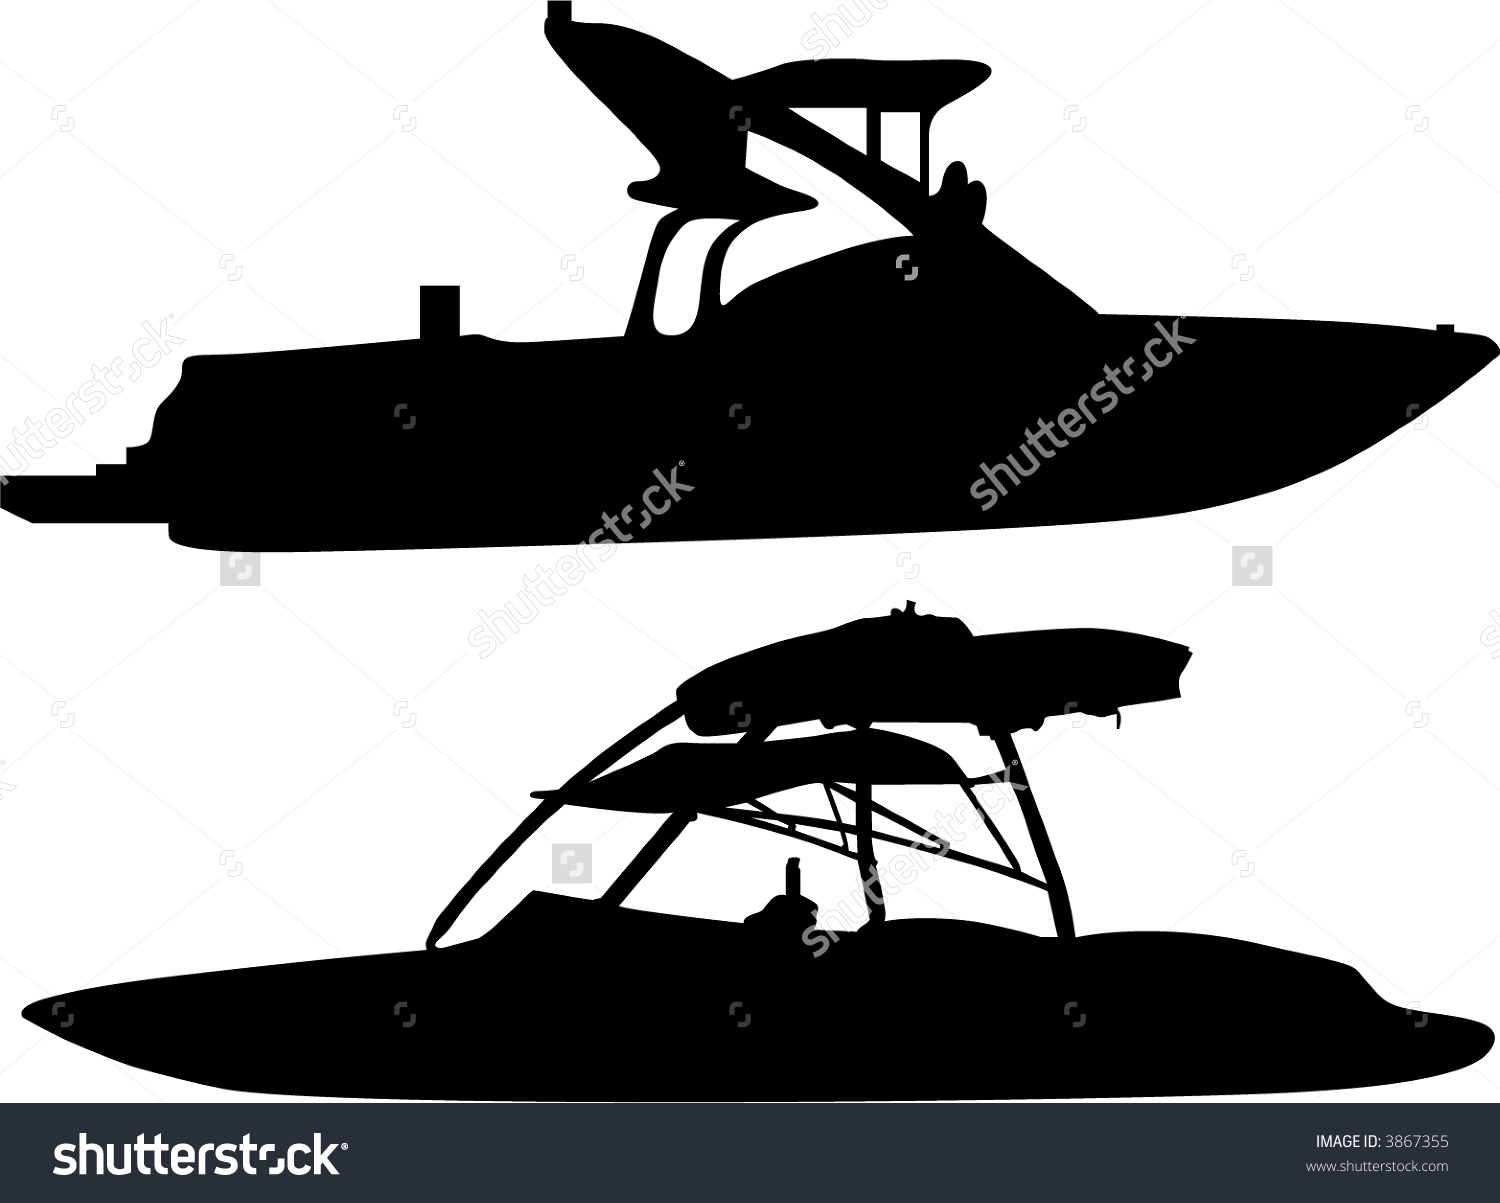 Wakeboard Boat Clipart.